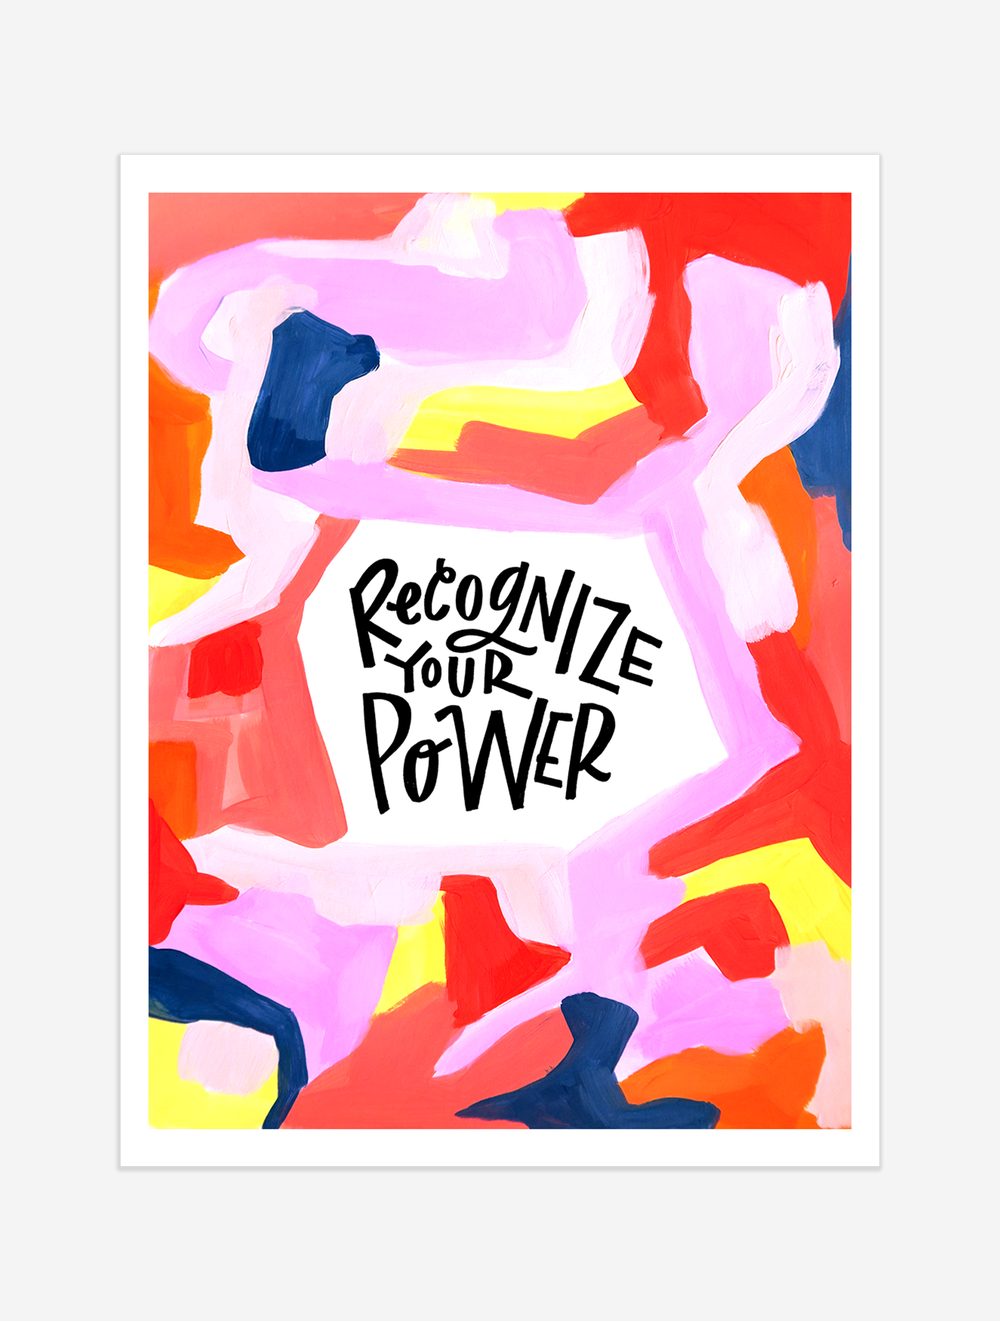 A reminder to recognize the opportunities in our daily lives to exert our power in a positive way. $25 giclee print available at the Made Vibrant Art Shop.